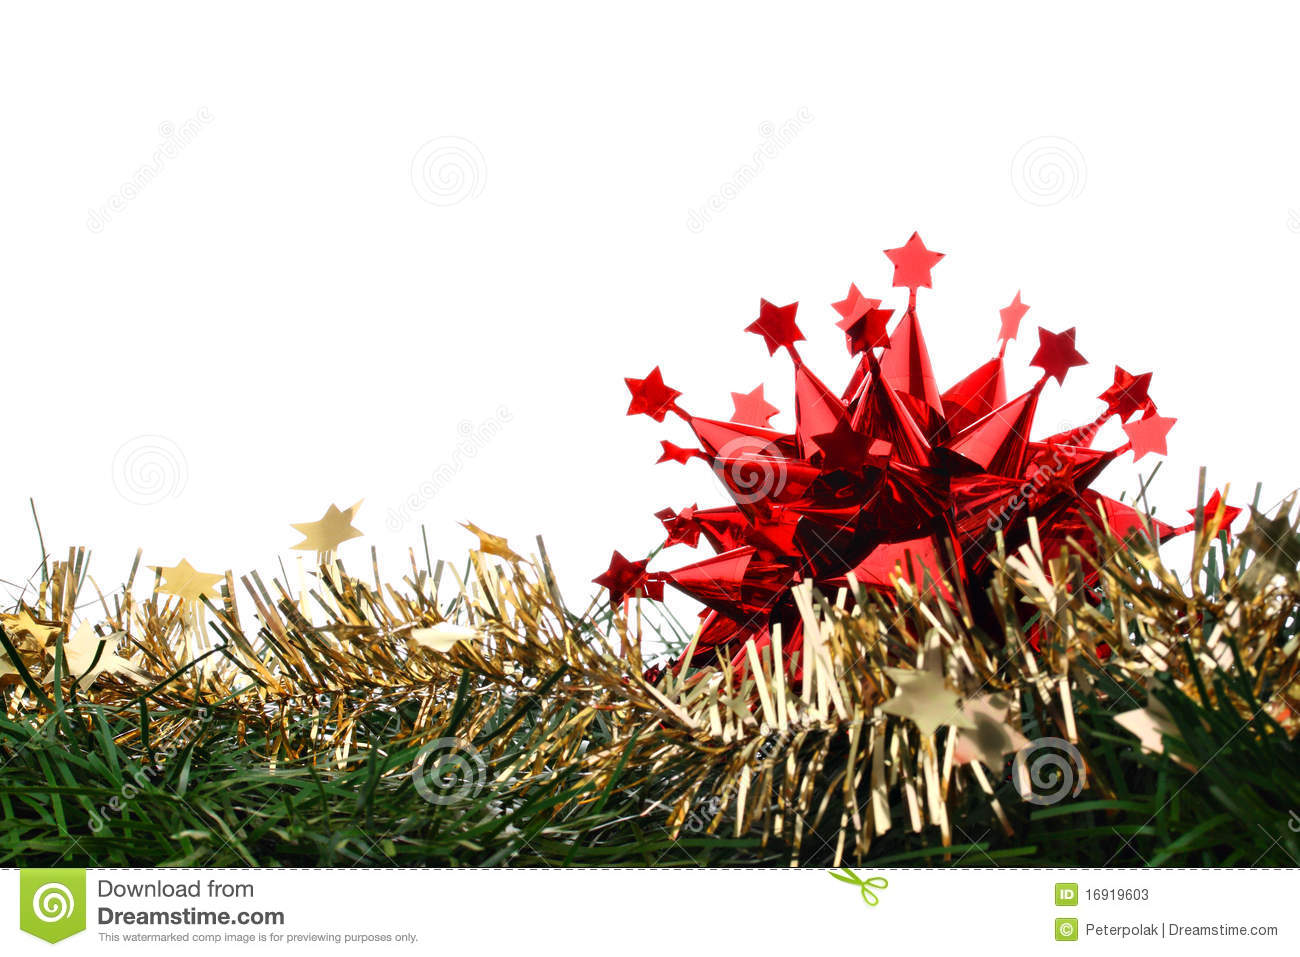 download red christmas decoration star on gold chain fir stock image image of golden - Christmas Chain Decorations